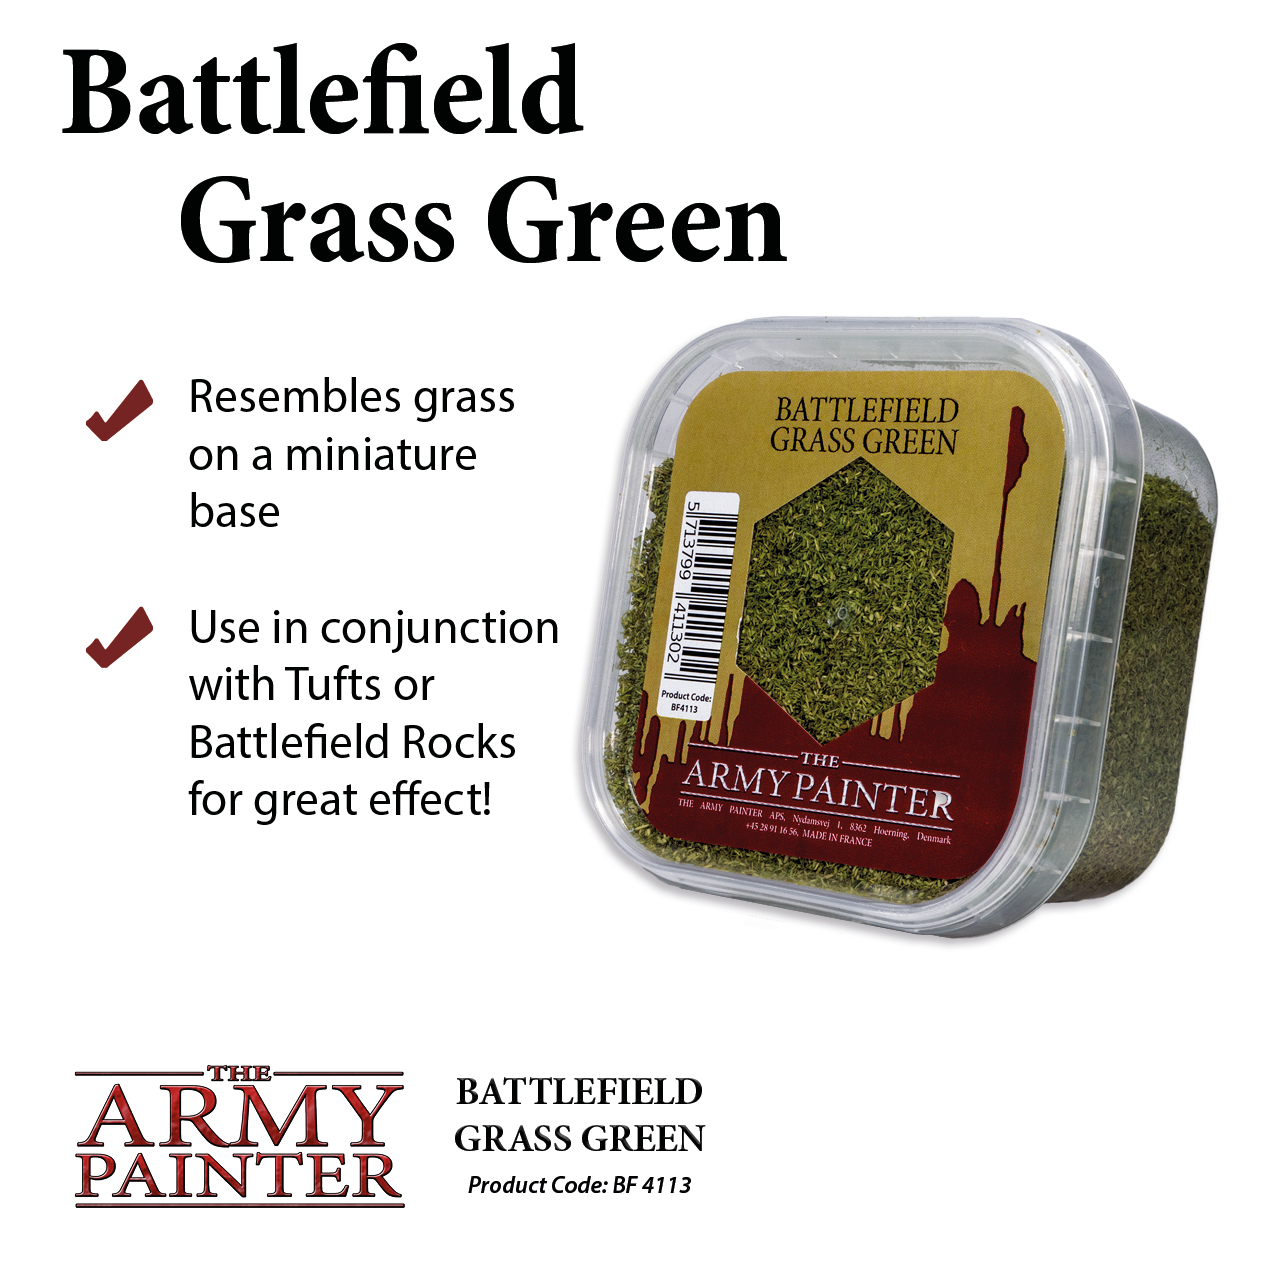 Buy Battlefield Grass Green - Board Game - Army Painter